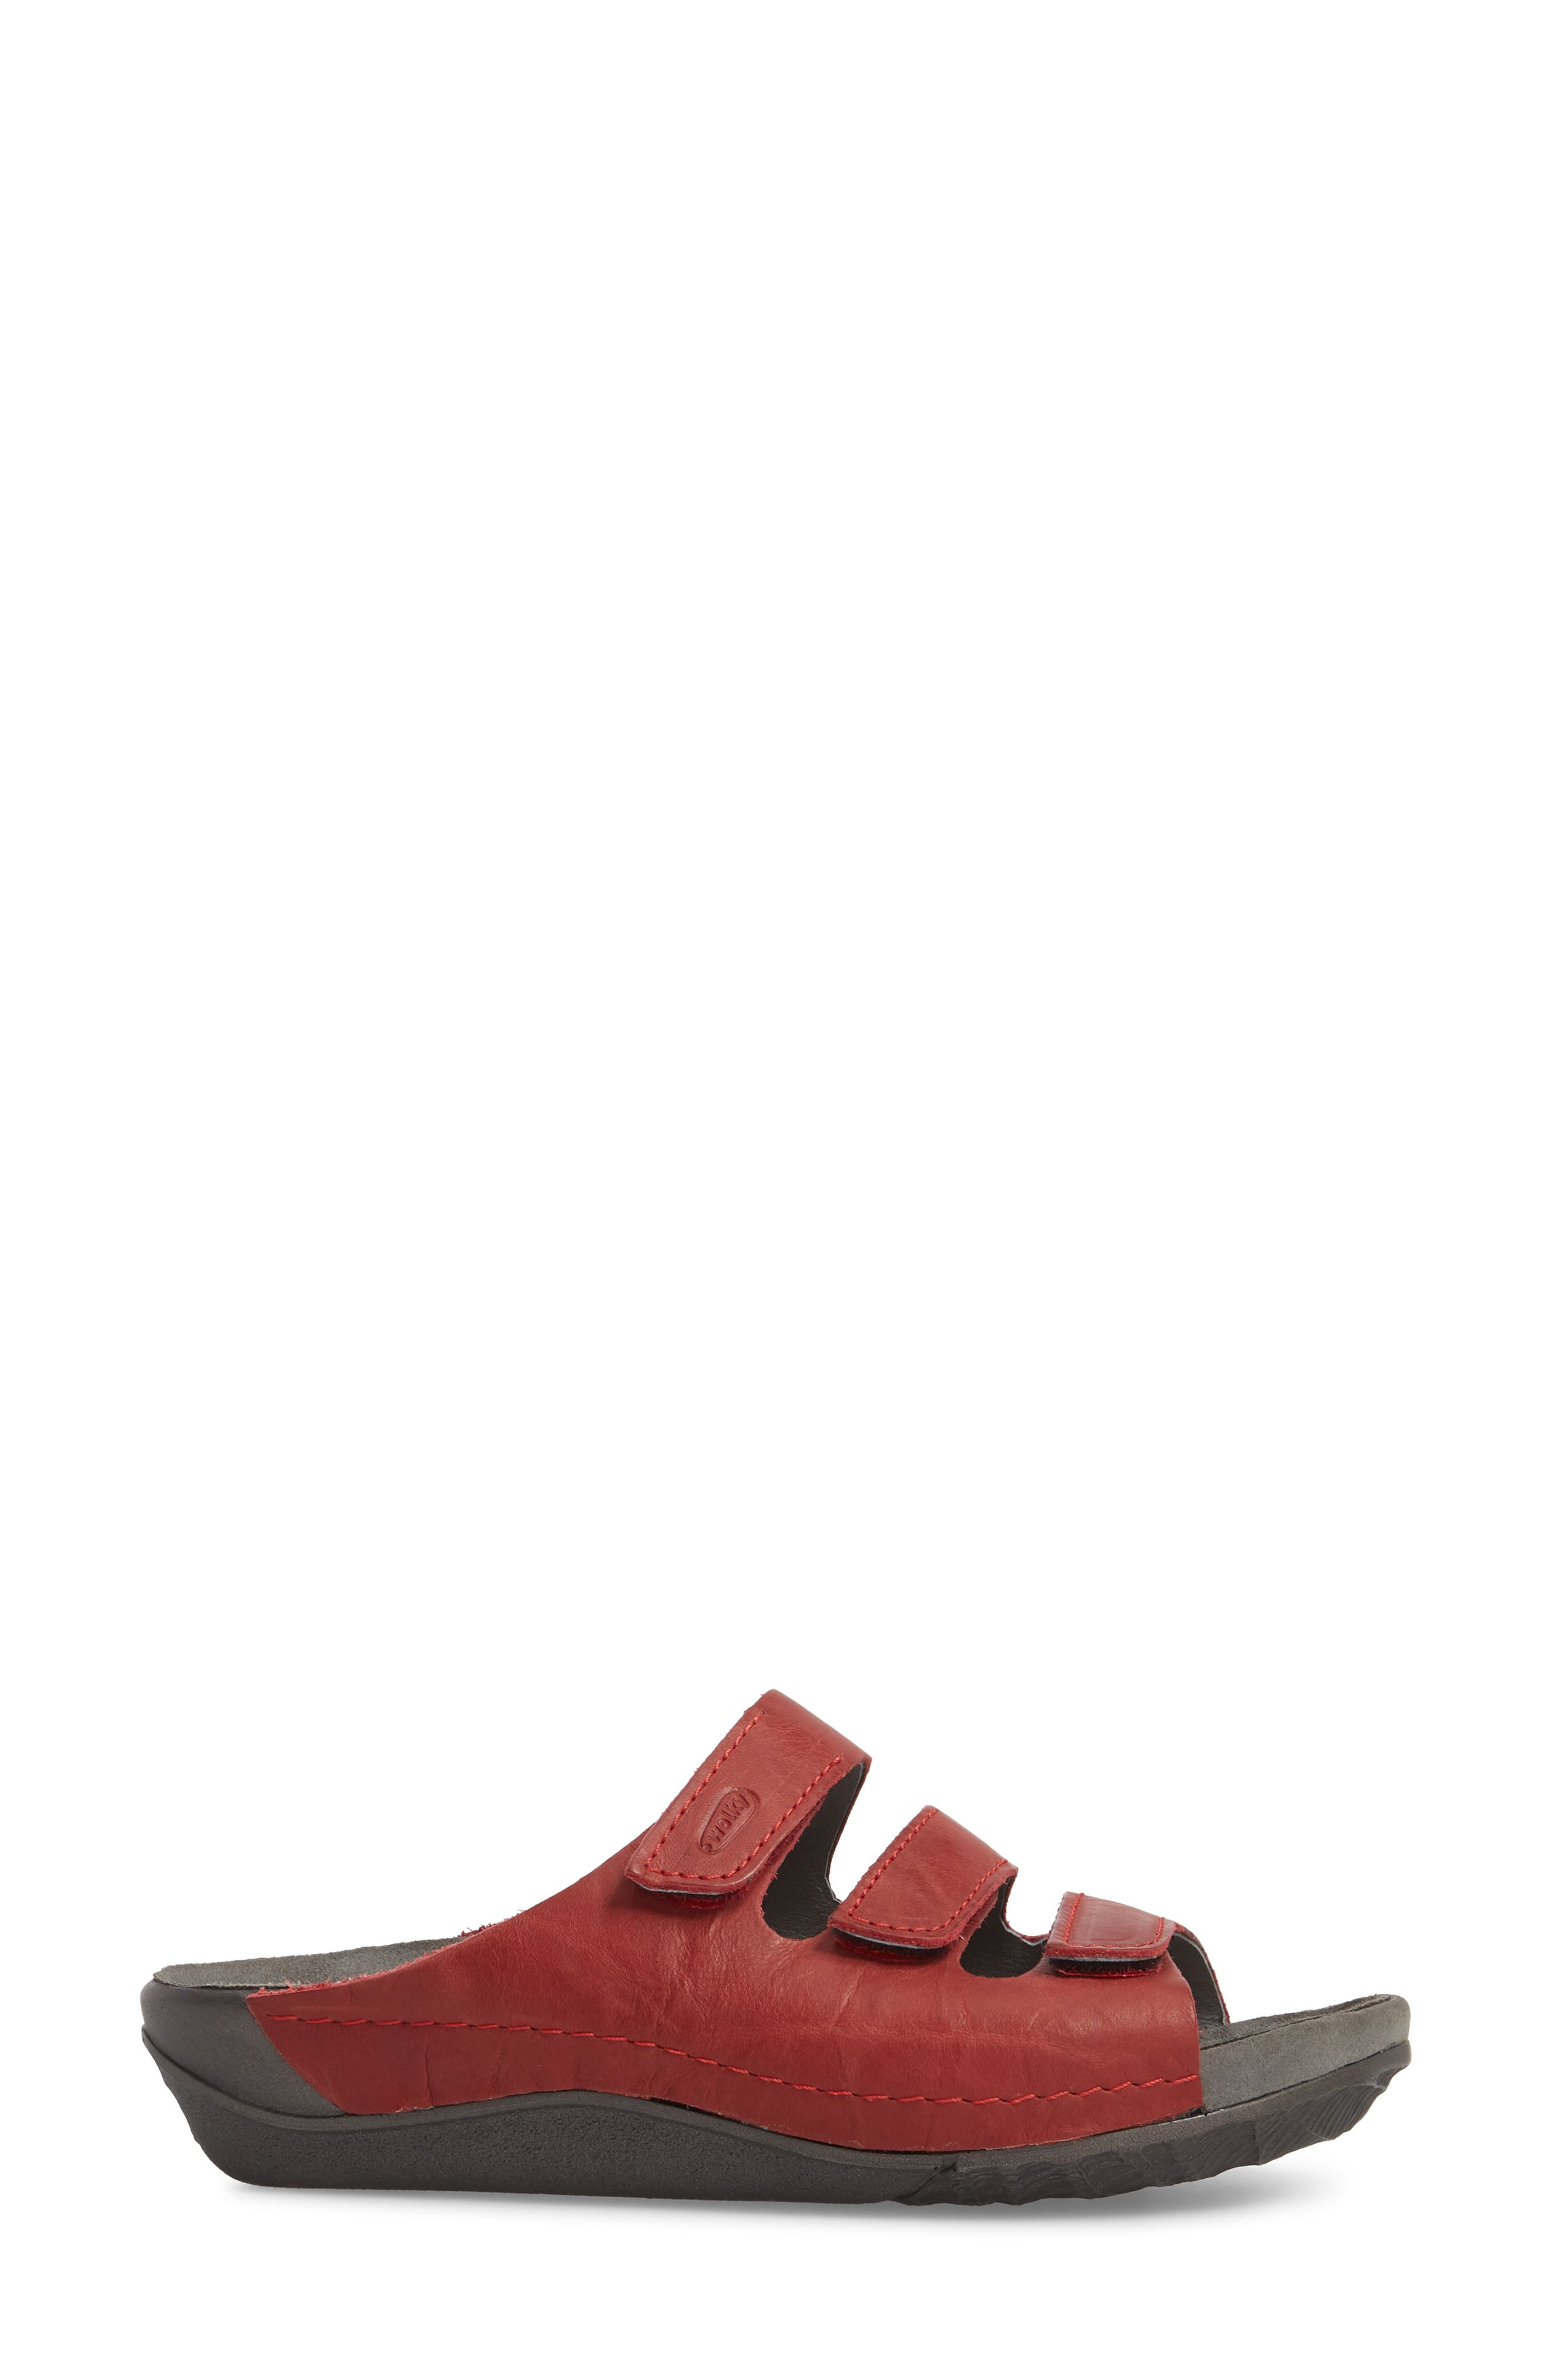 Nomad Slide Sandal,                             Alternate thumbnail 3, color,                             Red Leather